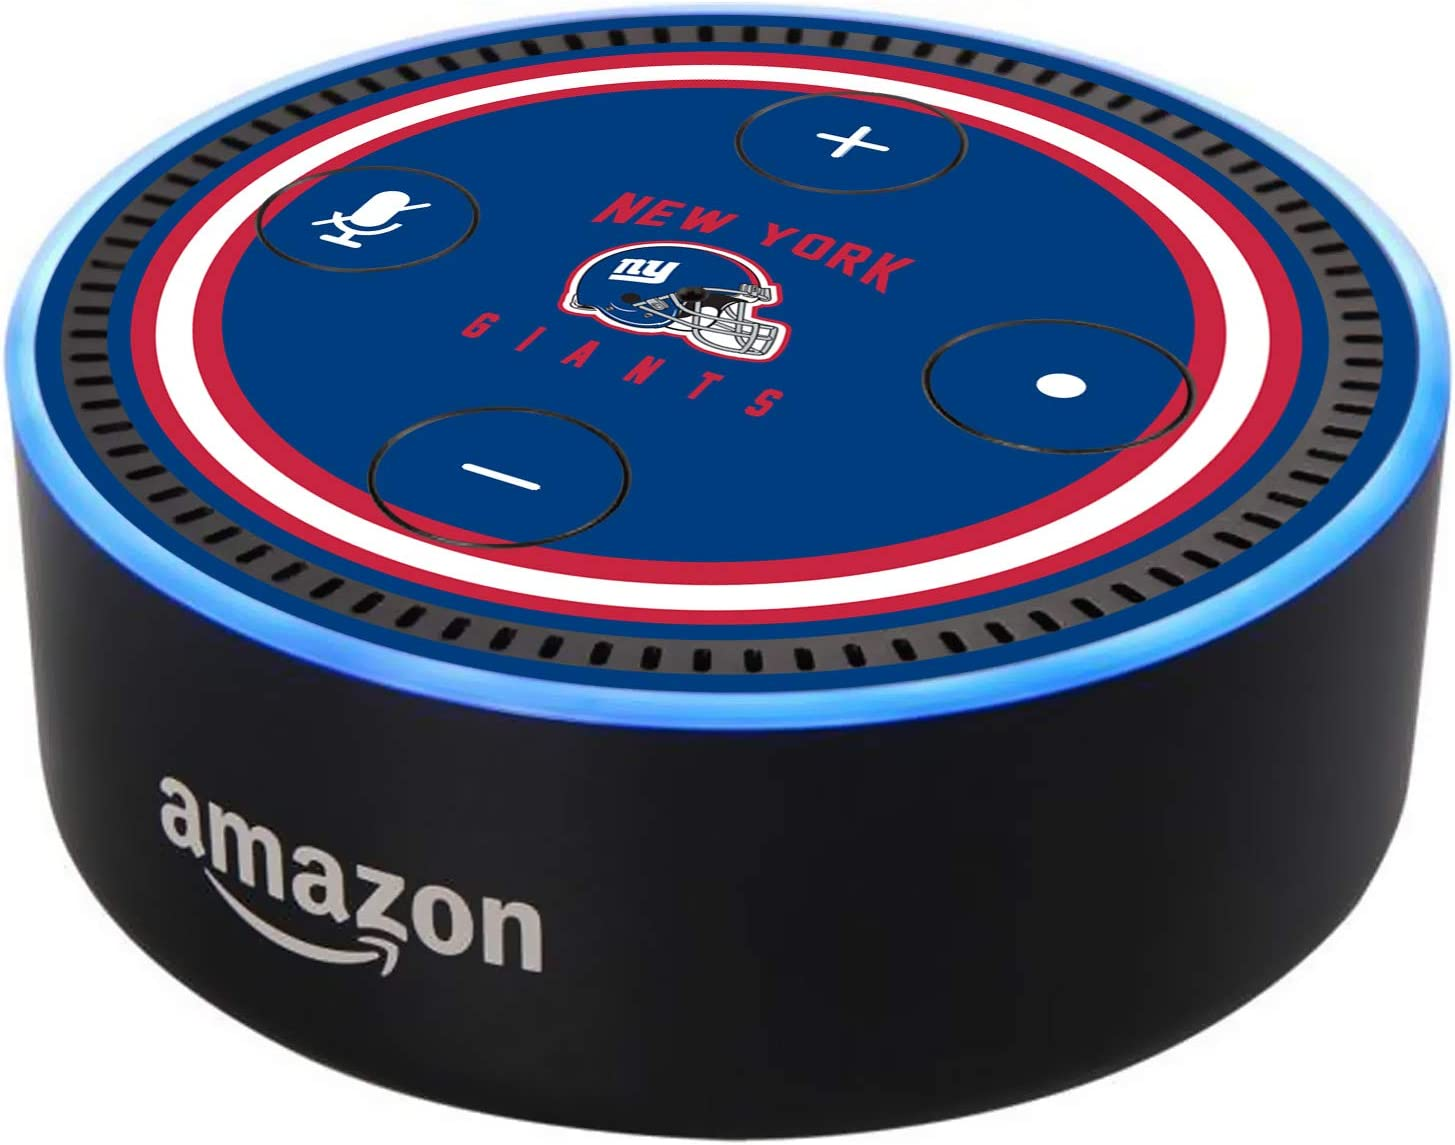 Head Case Designs Officially Licensed NFL Team Colour Helmet New York Giants Matte Vinyl Sticker Skin Decal Cover Compatible with Amazon Echo Dot (2nd Gen)